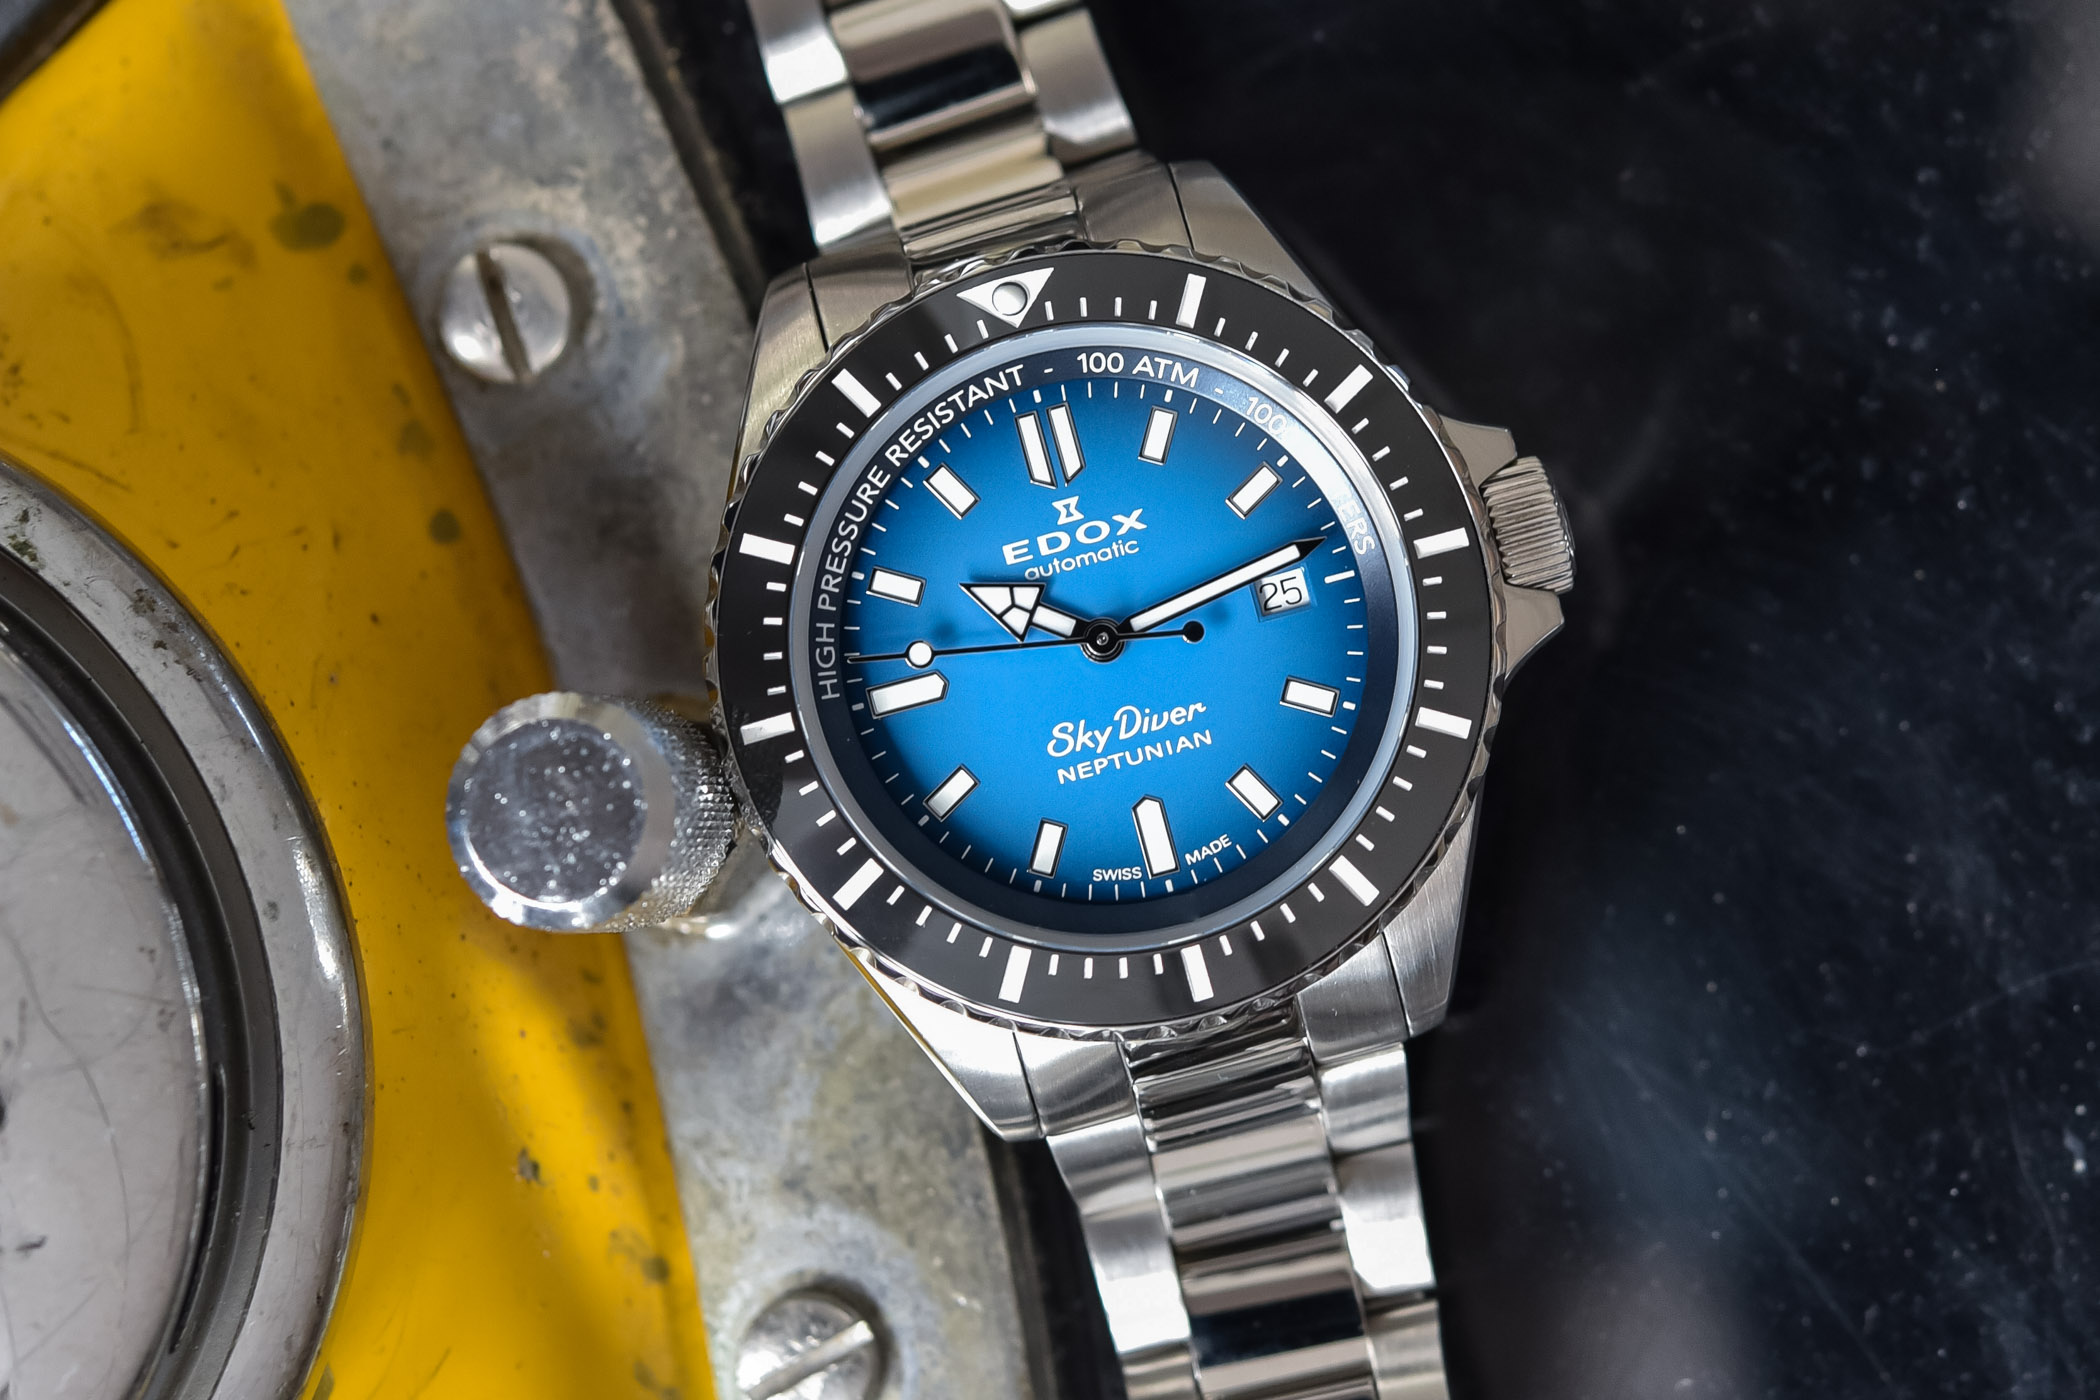 Edox SkyDiver Neptunian Deep Dive Watch 1000m